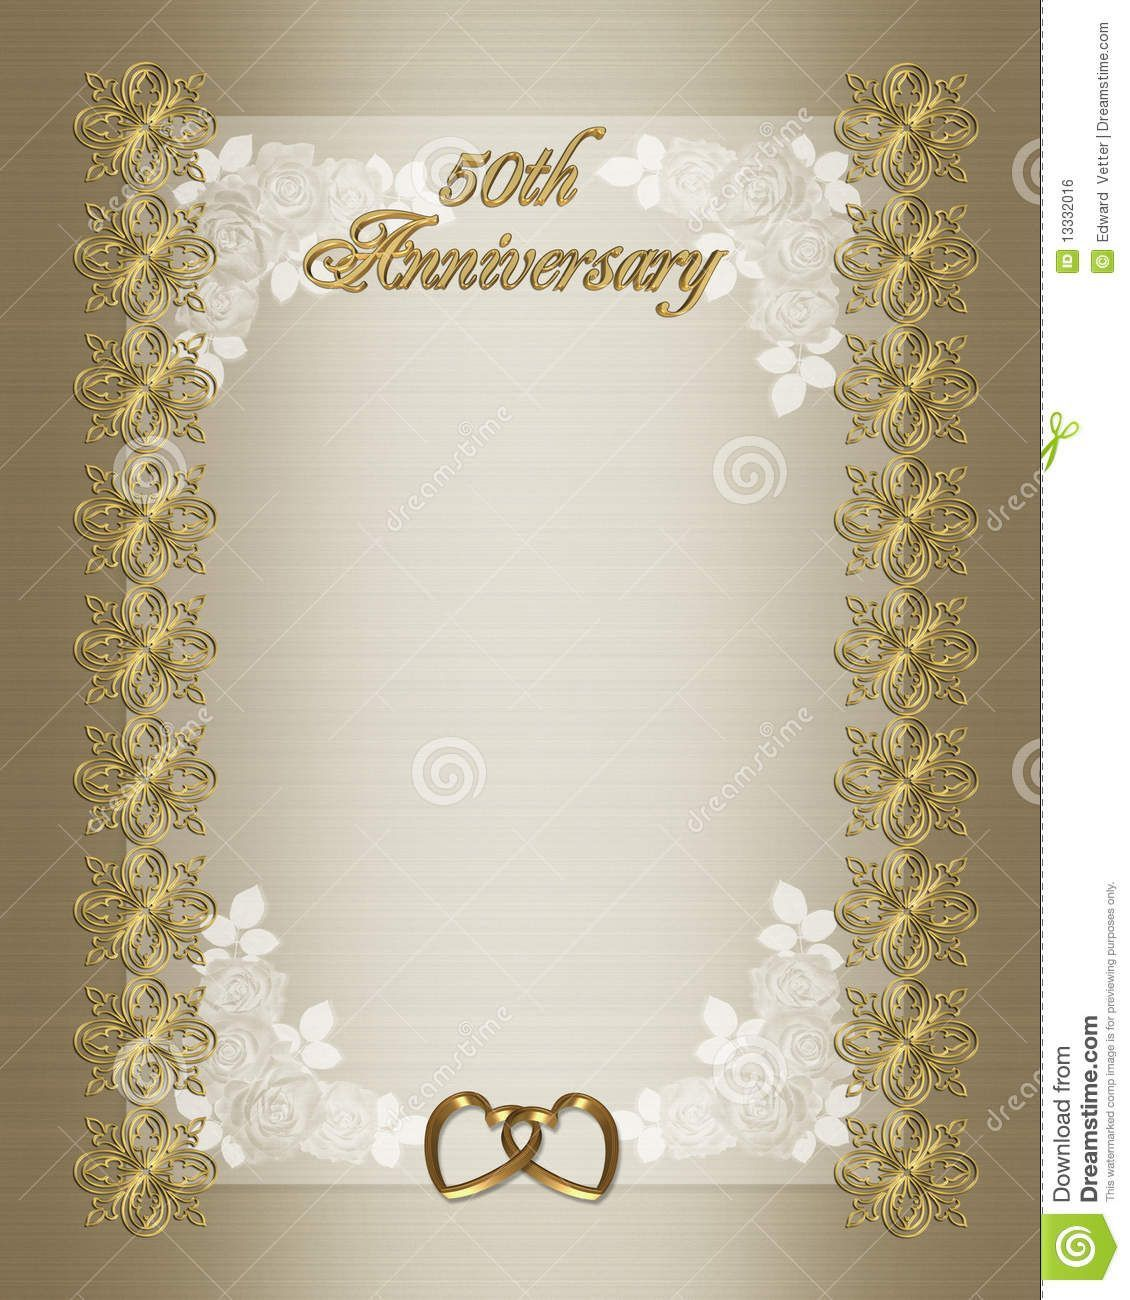 008 Archaicawful 50th Wedding Anniversary Invitation Template Free Download Concept  GoldenFull